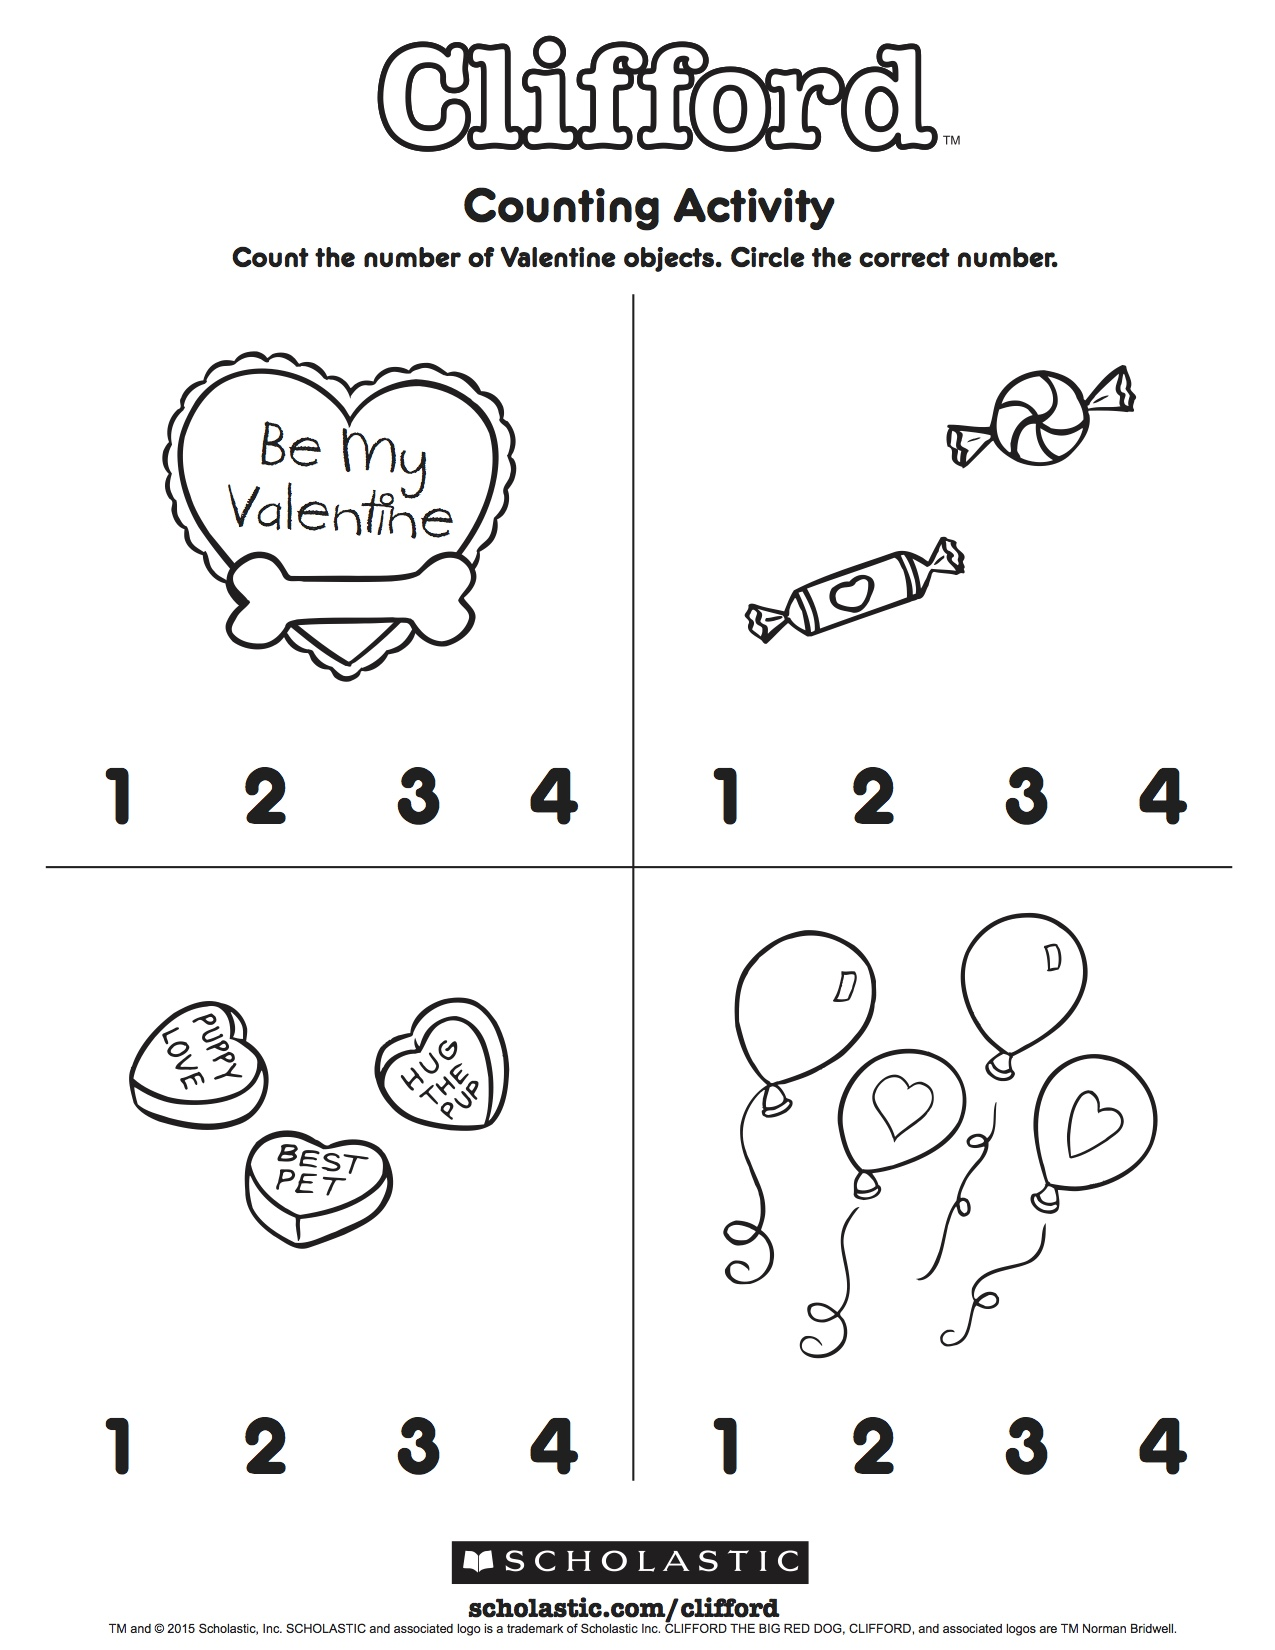 Clifford S Counting Activity